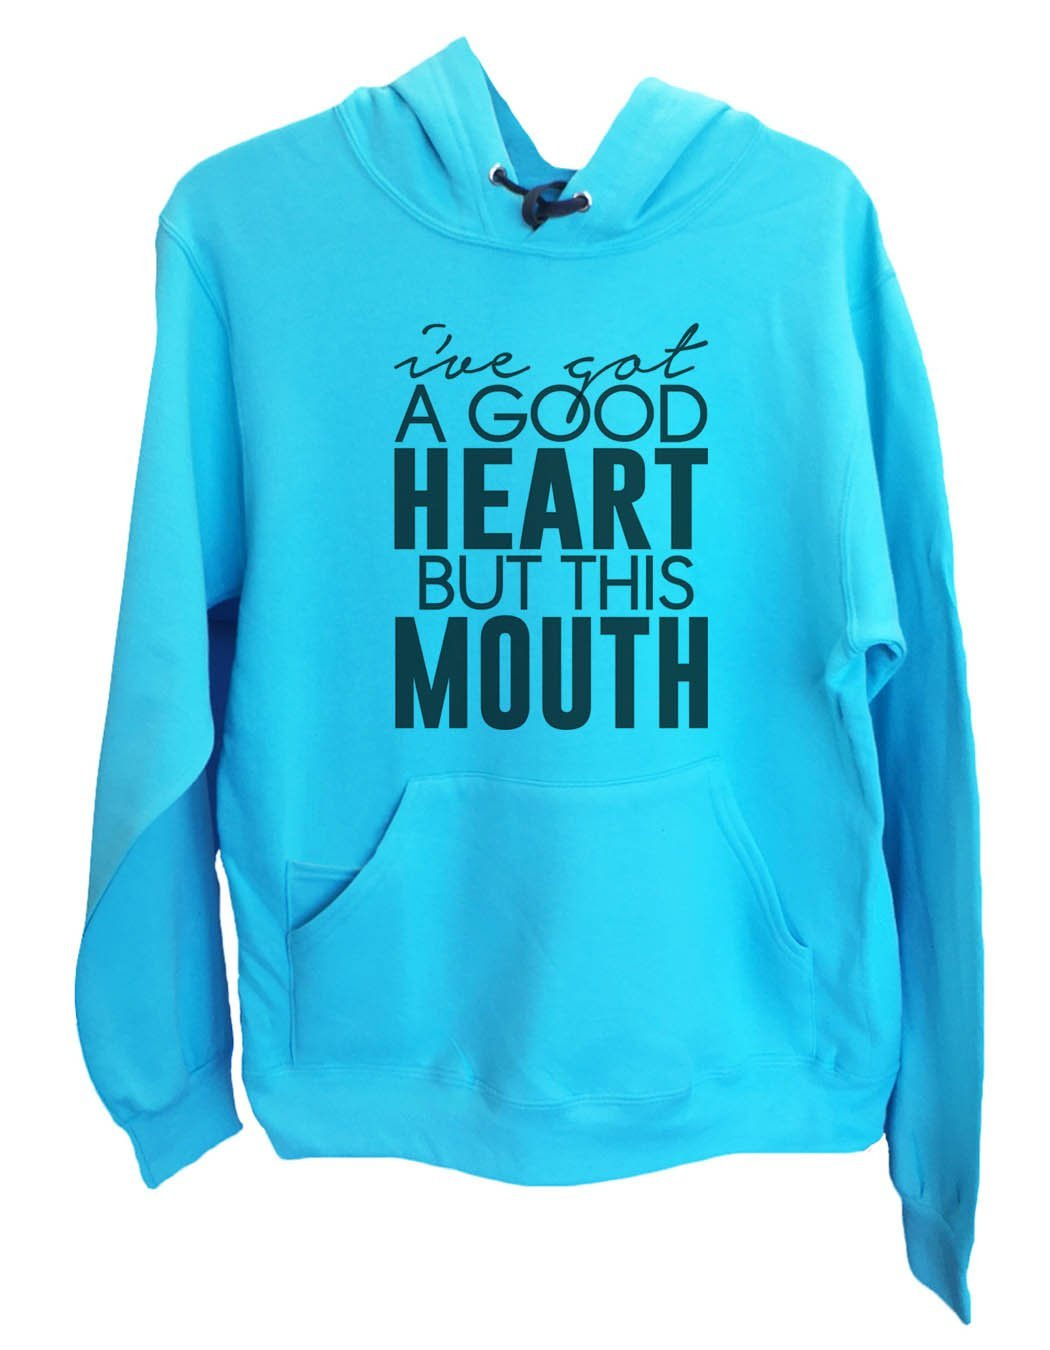 UNISEX HOODIE - I've Got A Good Heart But This Mouth - FUNNY MENS AND WOMENS HOODED SWEATSHIRTS - 2148 Funny Shirt